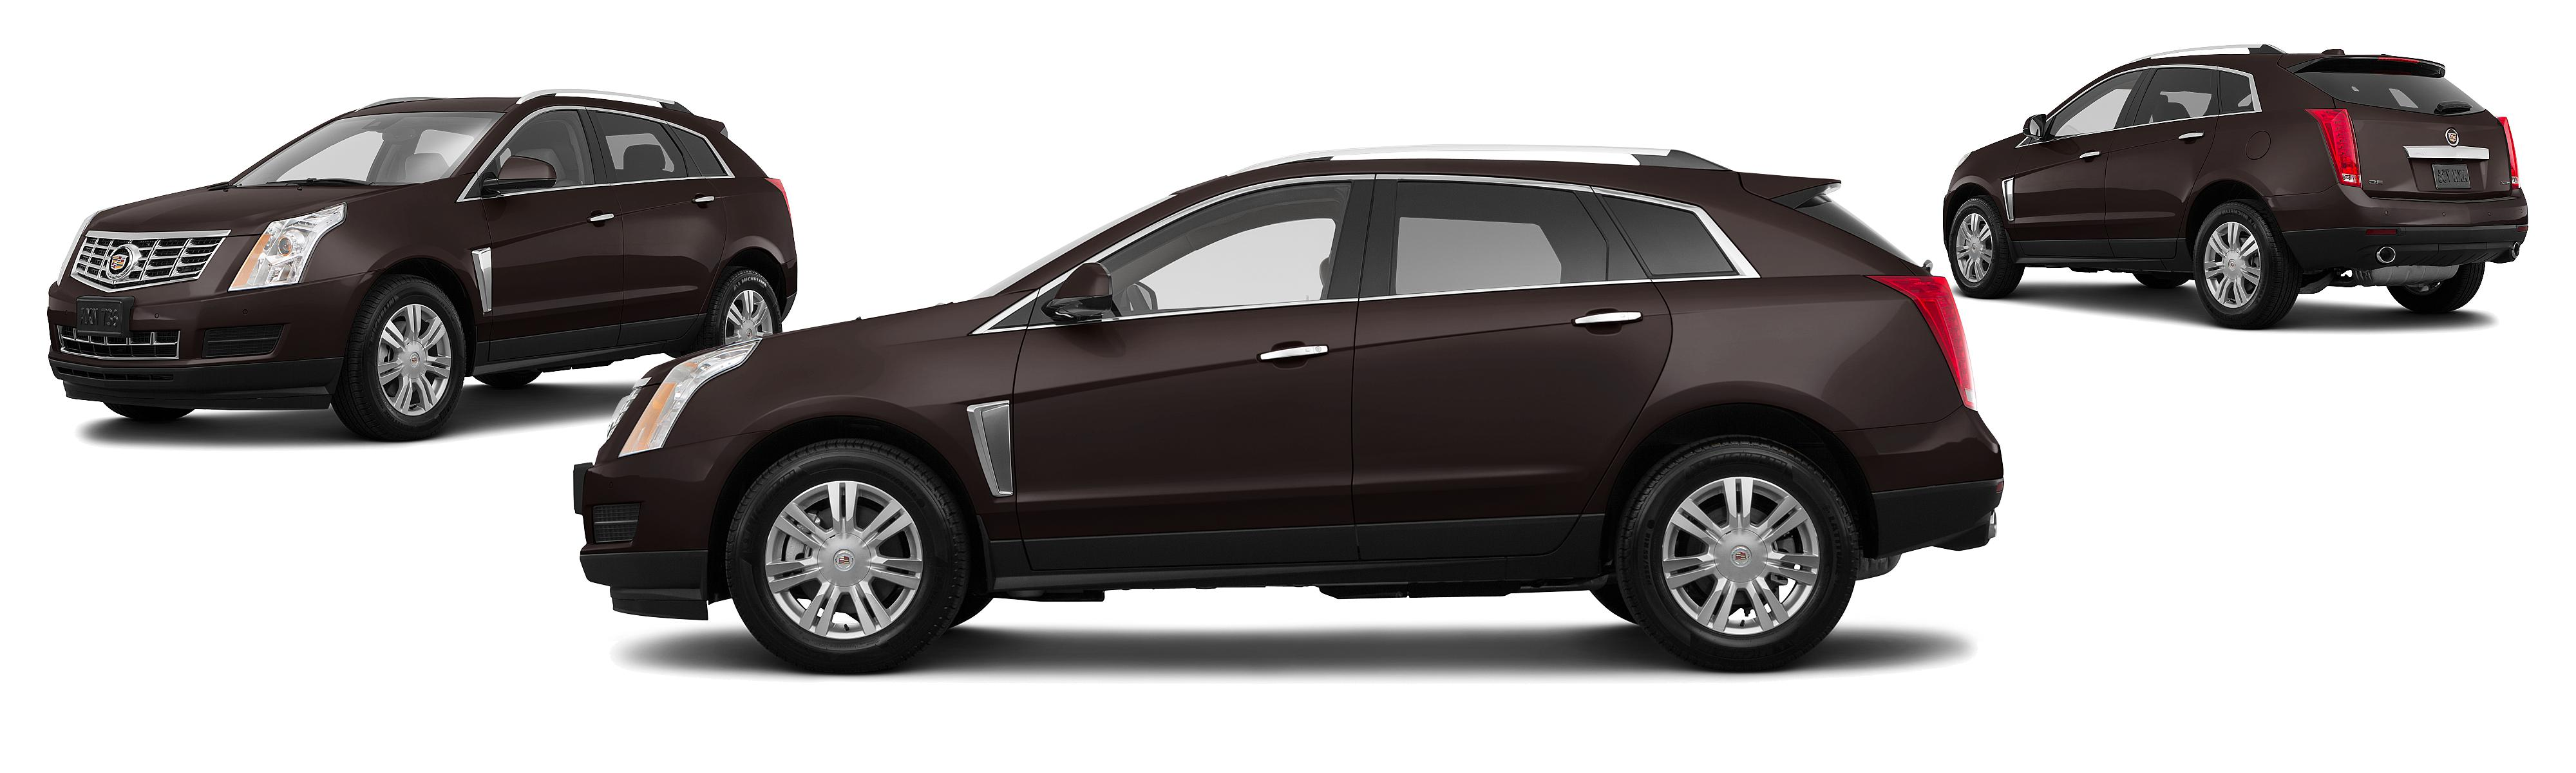 suv srx detail cadillac eye luxurious com with crossover tech techsavvymama for review an